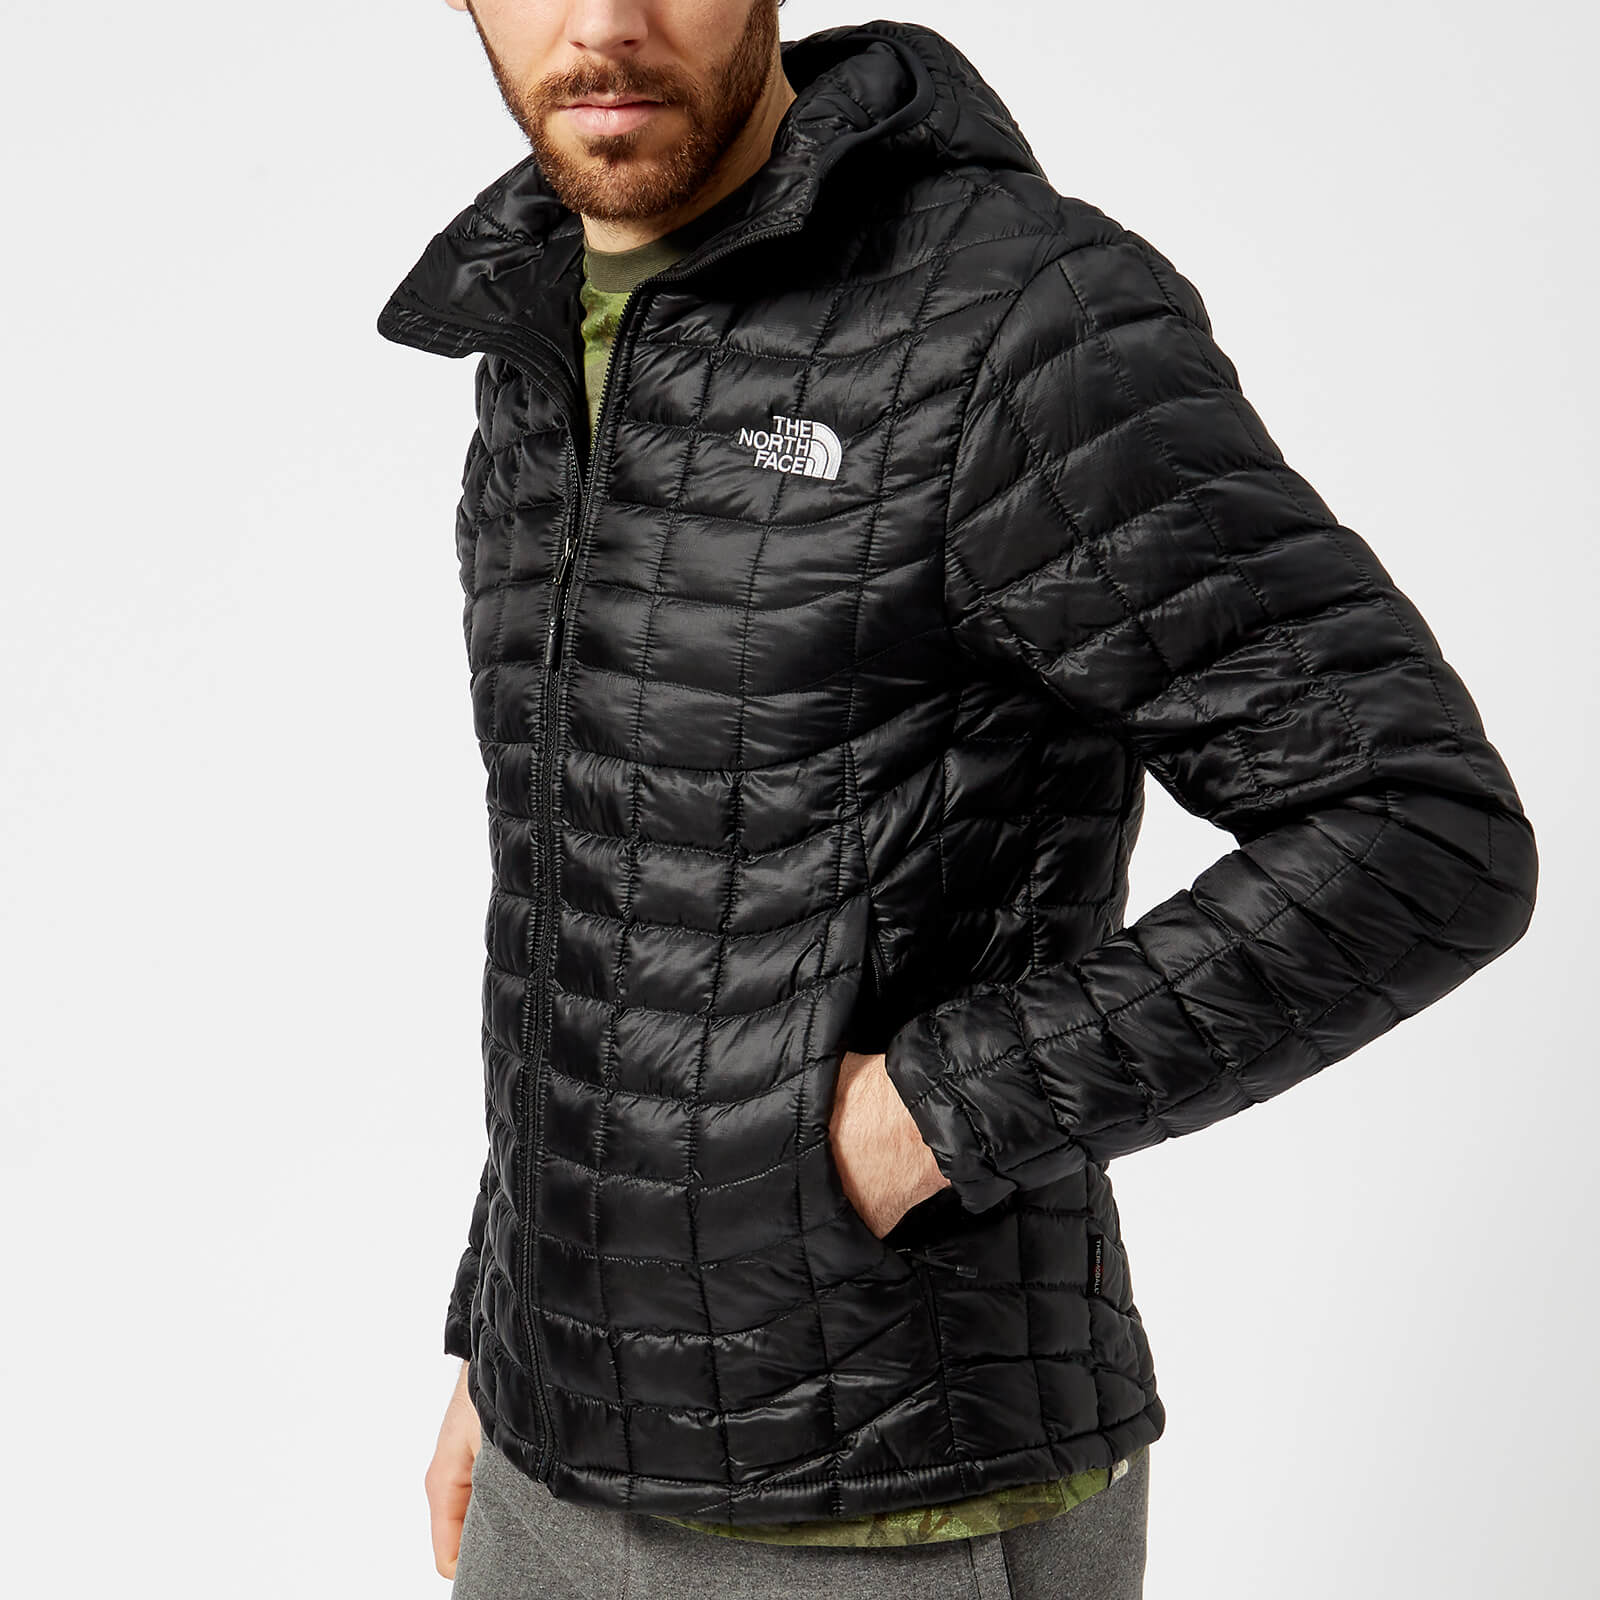 24bea2060db69 The North Face Men's Thermoball Hoodie Jacket - TNF Black Clothing ...